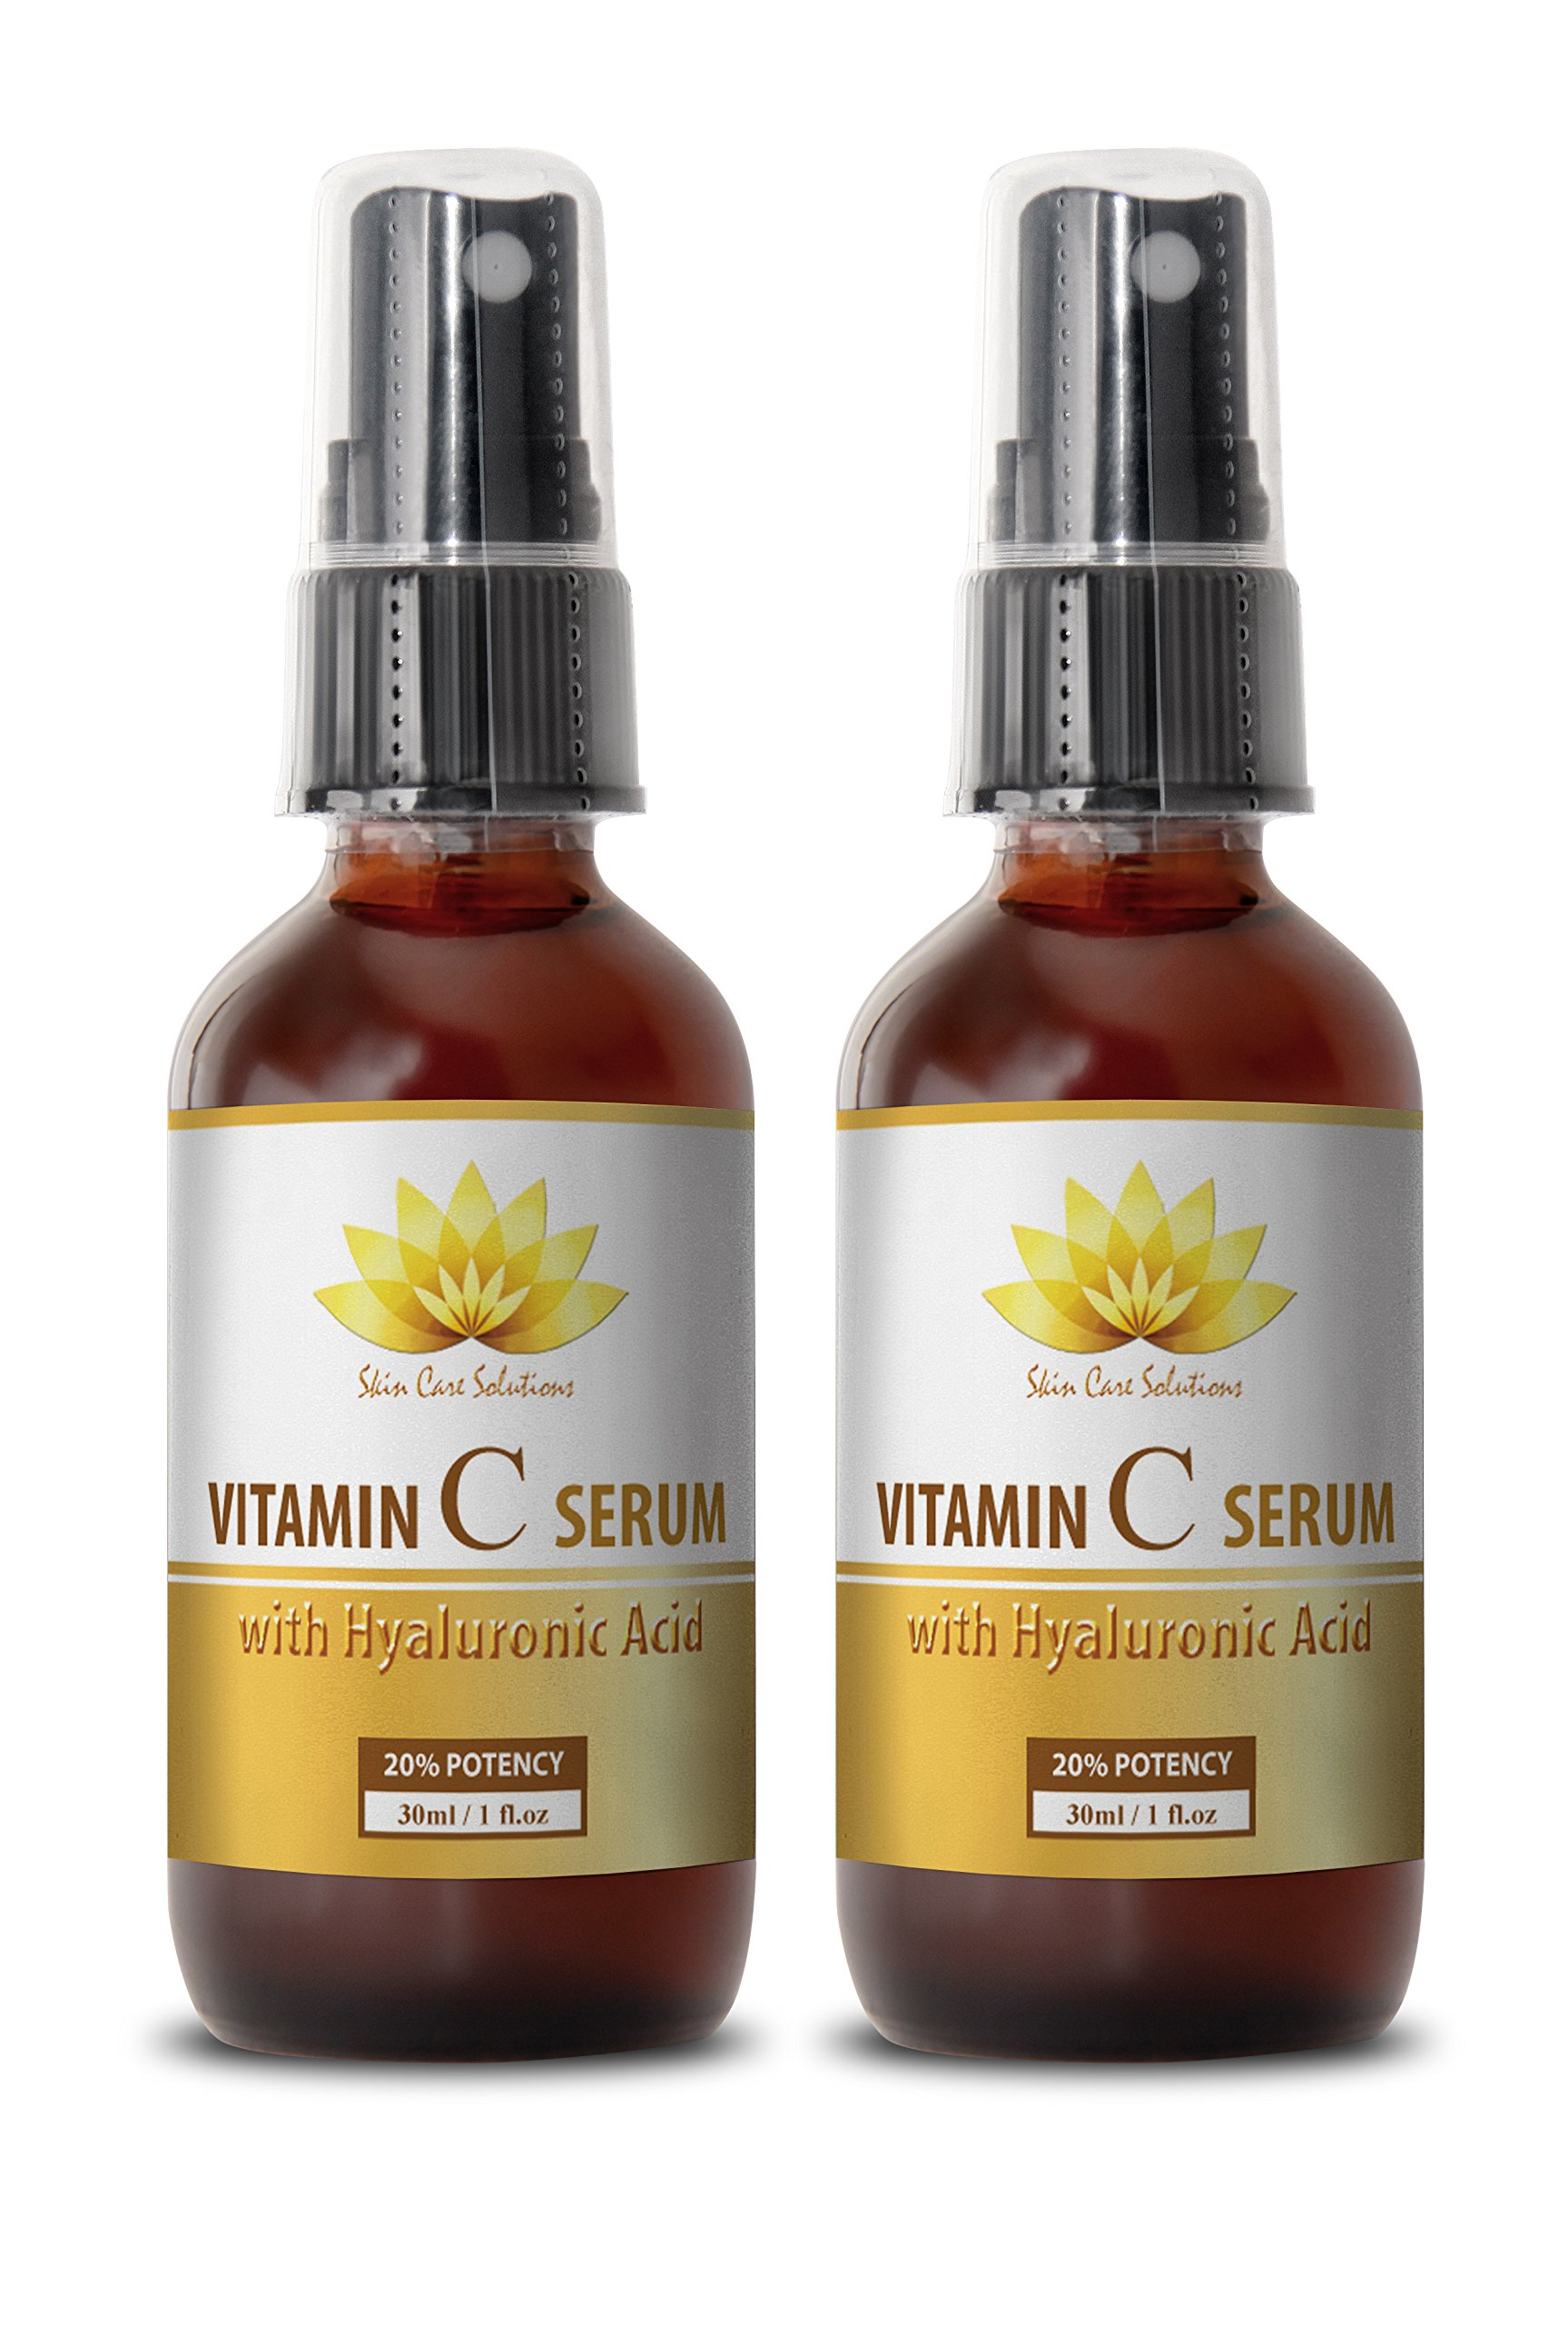 Vitamin c face serum - VITAMIN C SERUM With Hyaluronic Acid - Face care for women - 2 bottles